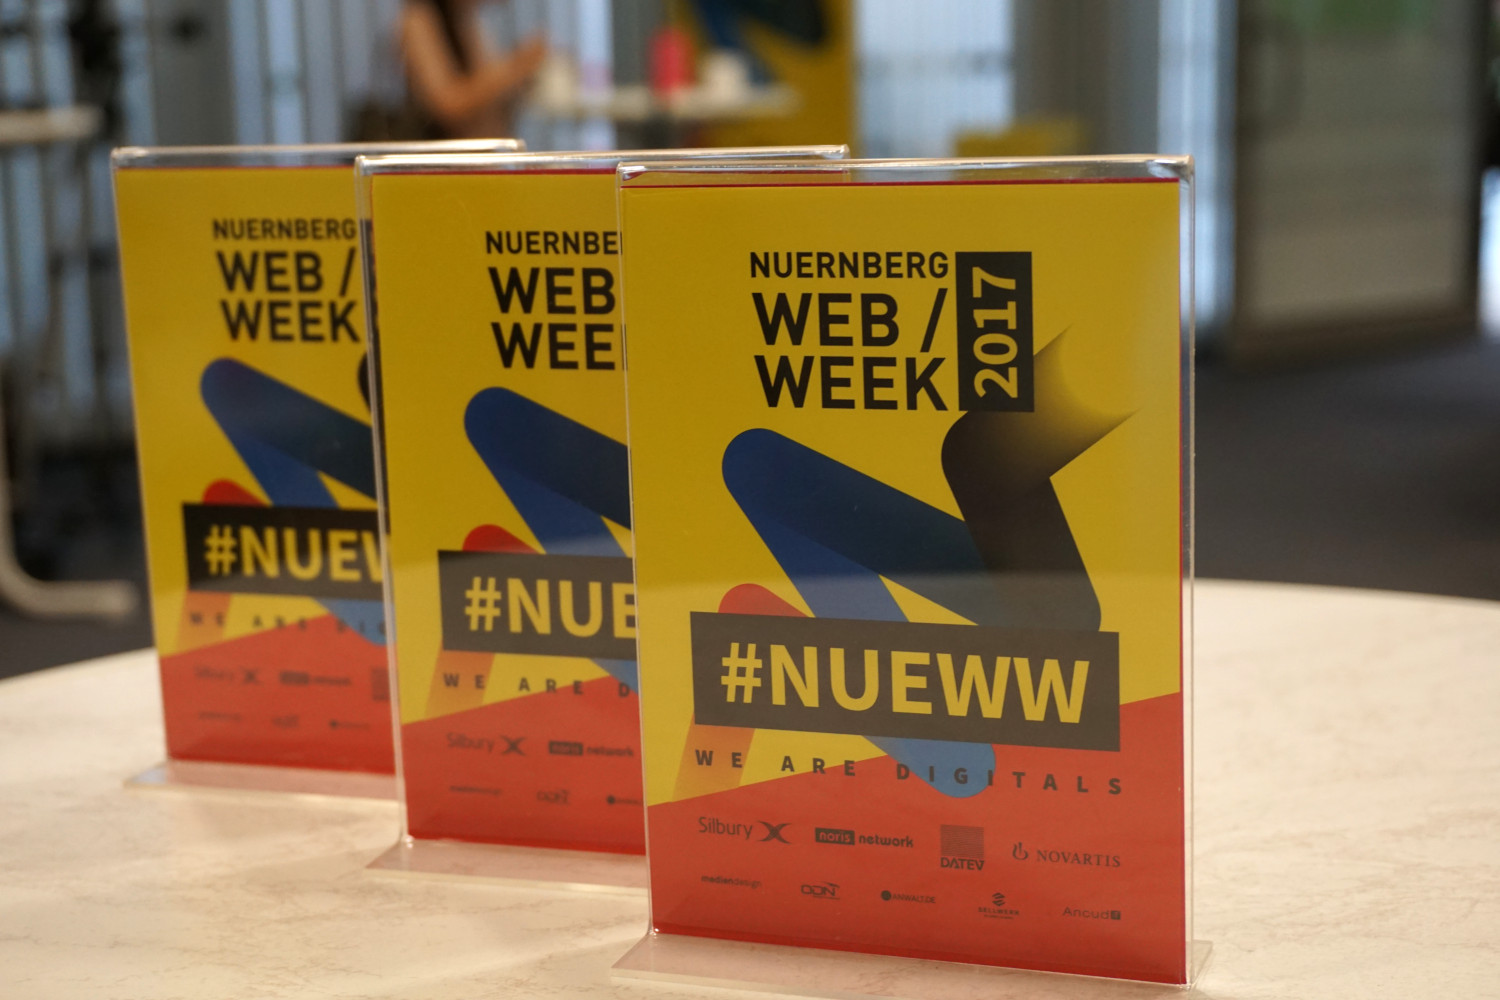 On the roads of the Nuremberg Web Week #NUEWW